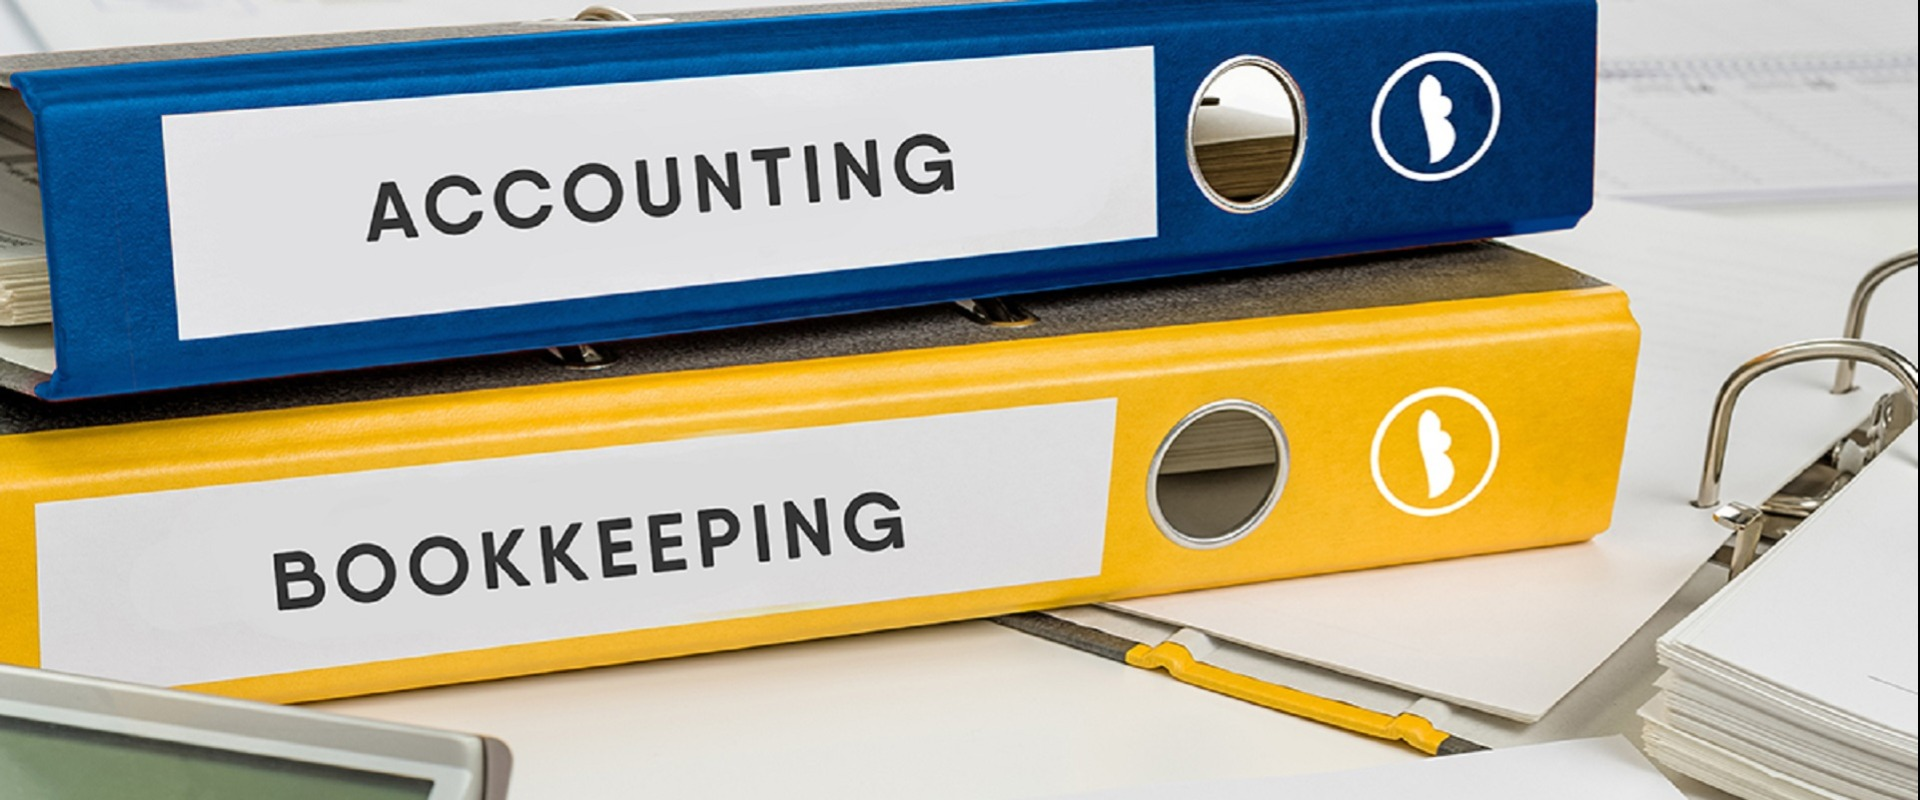 Register for the forthcoming NPCC webinar: Fundamentals of Keeping Books and Records for SMEs